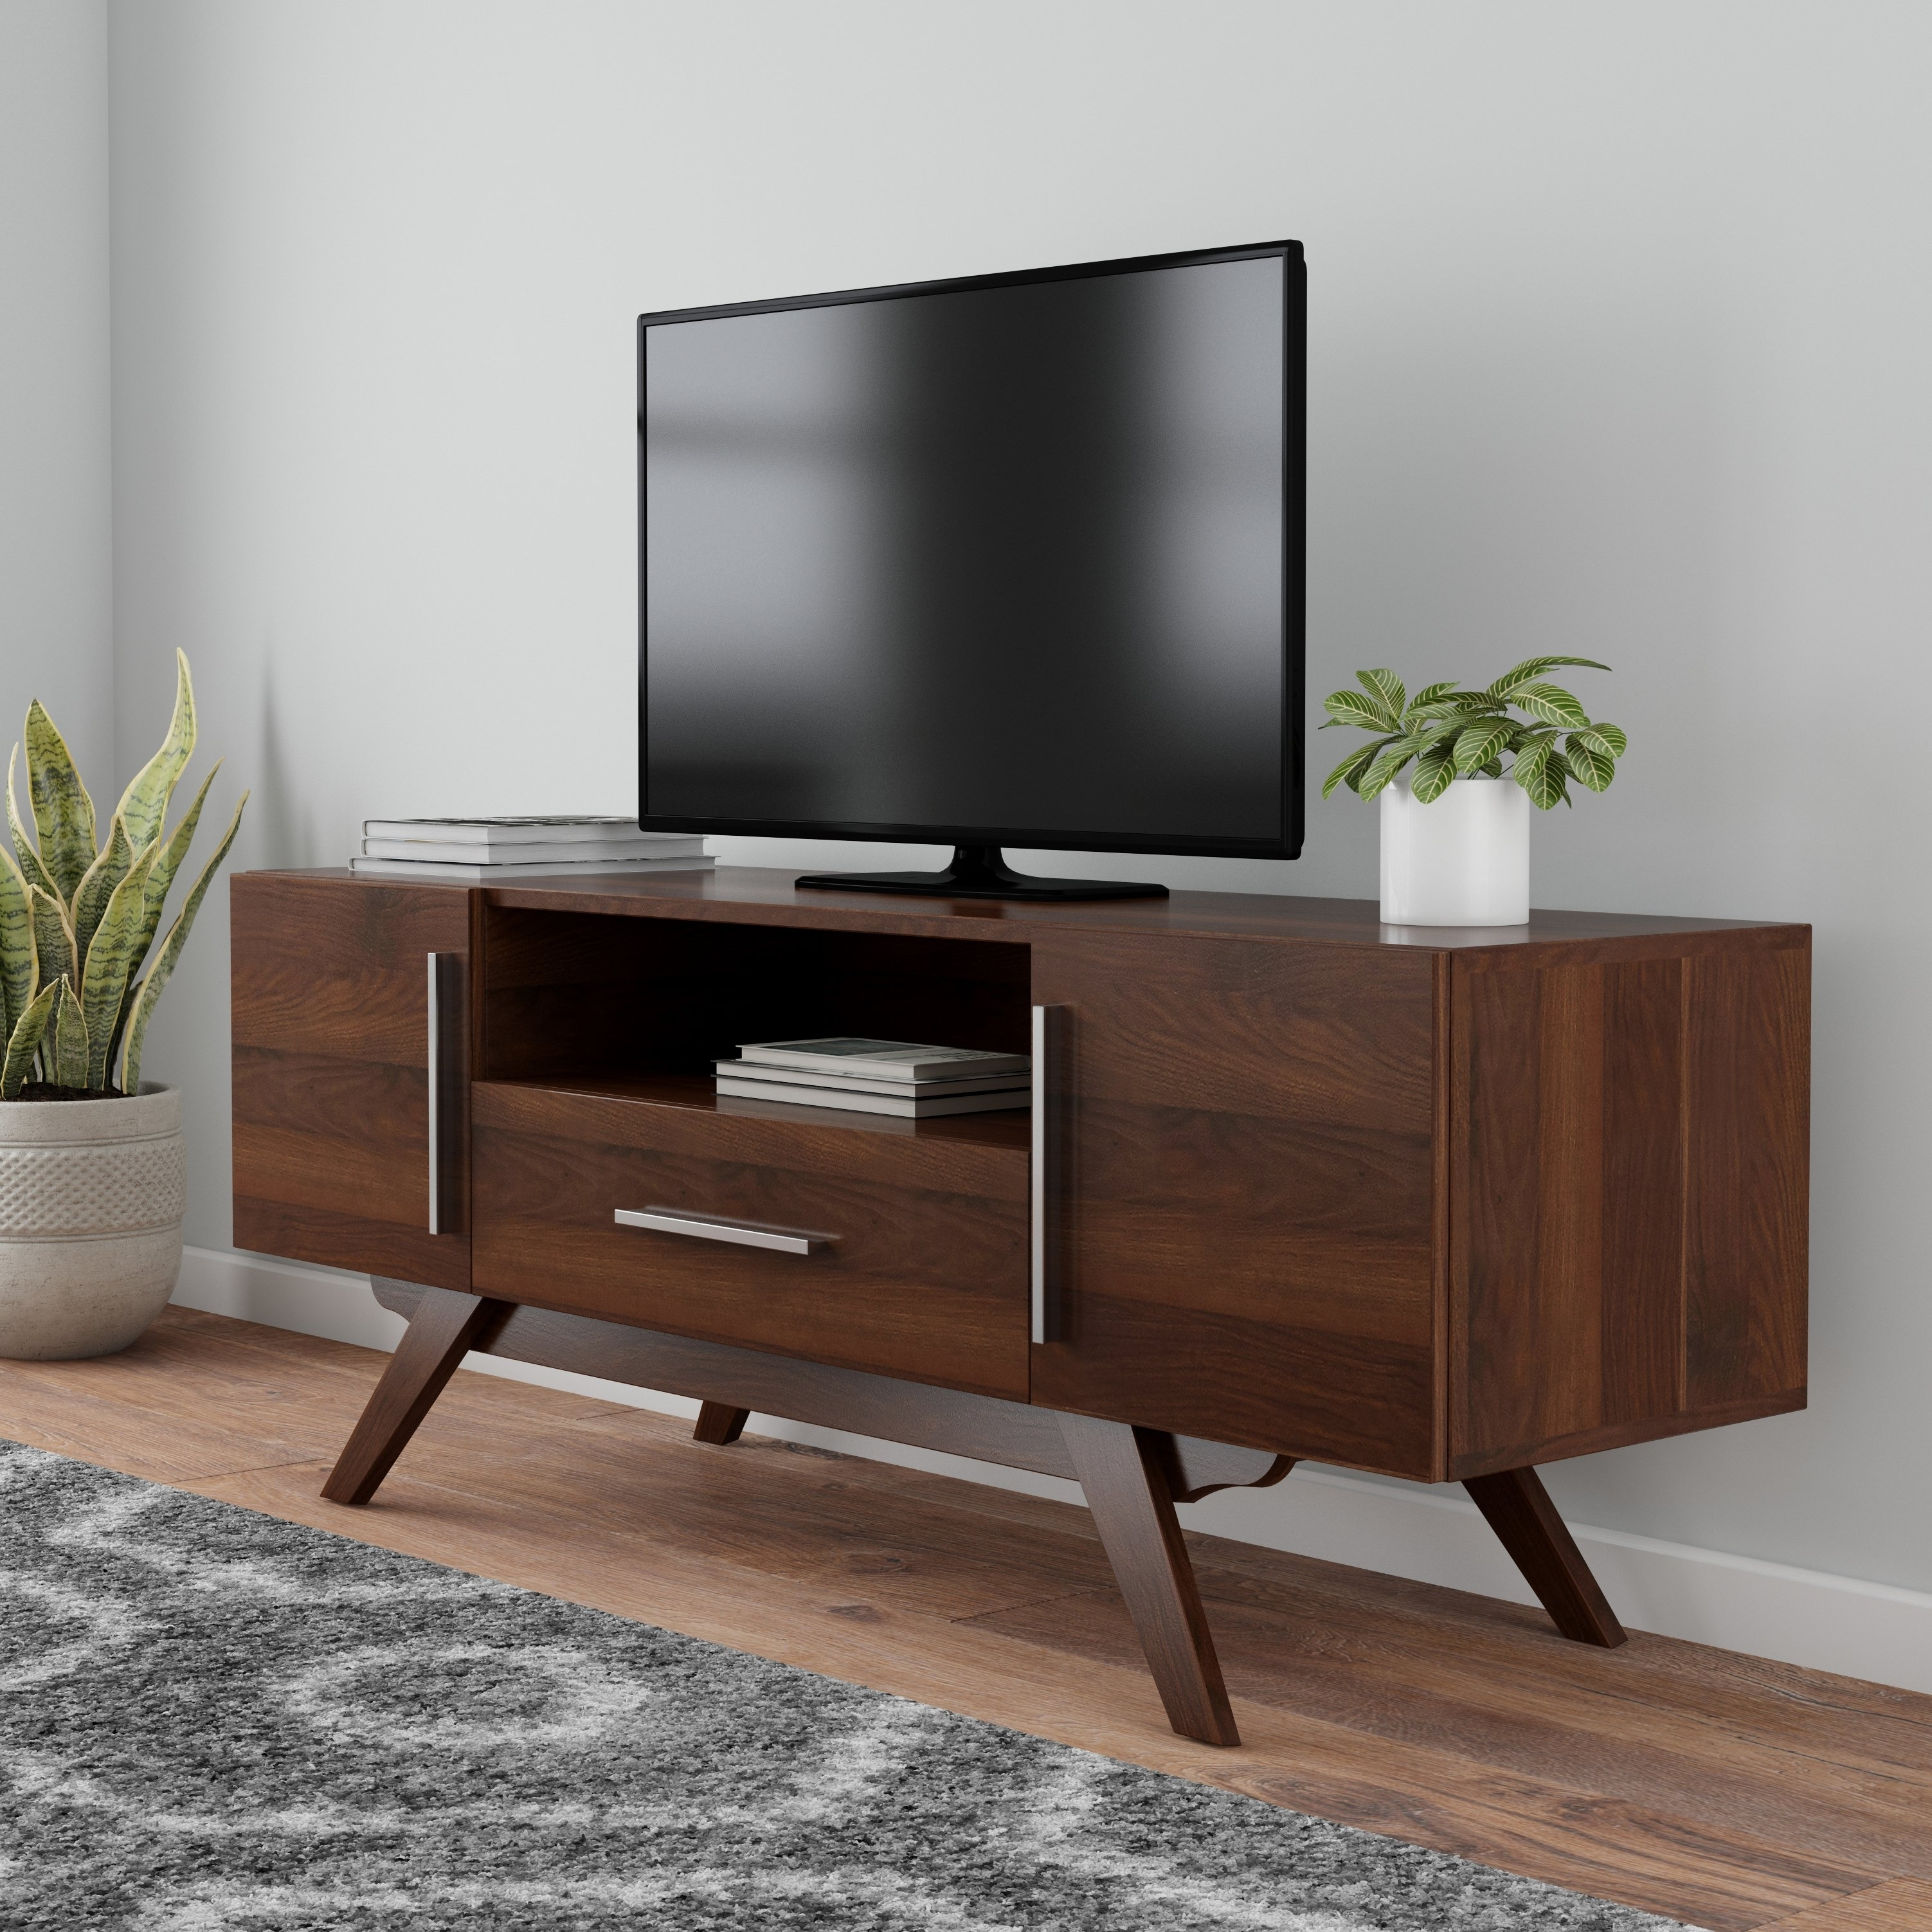 Shop Carson Carrington Arendal Mid Century Tv Stand – Free Shipping Intended For Mid Burnt Oak 71 Inch Sideboards (View 16 of 30)